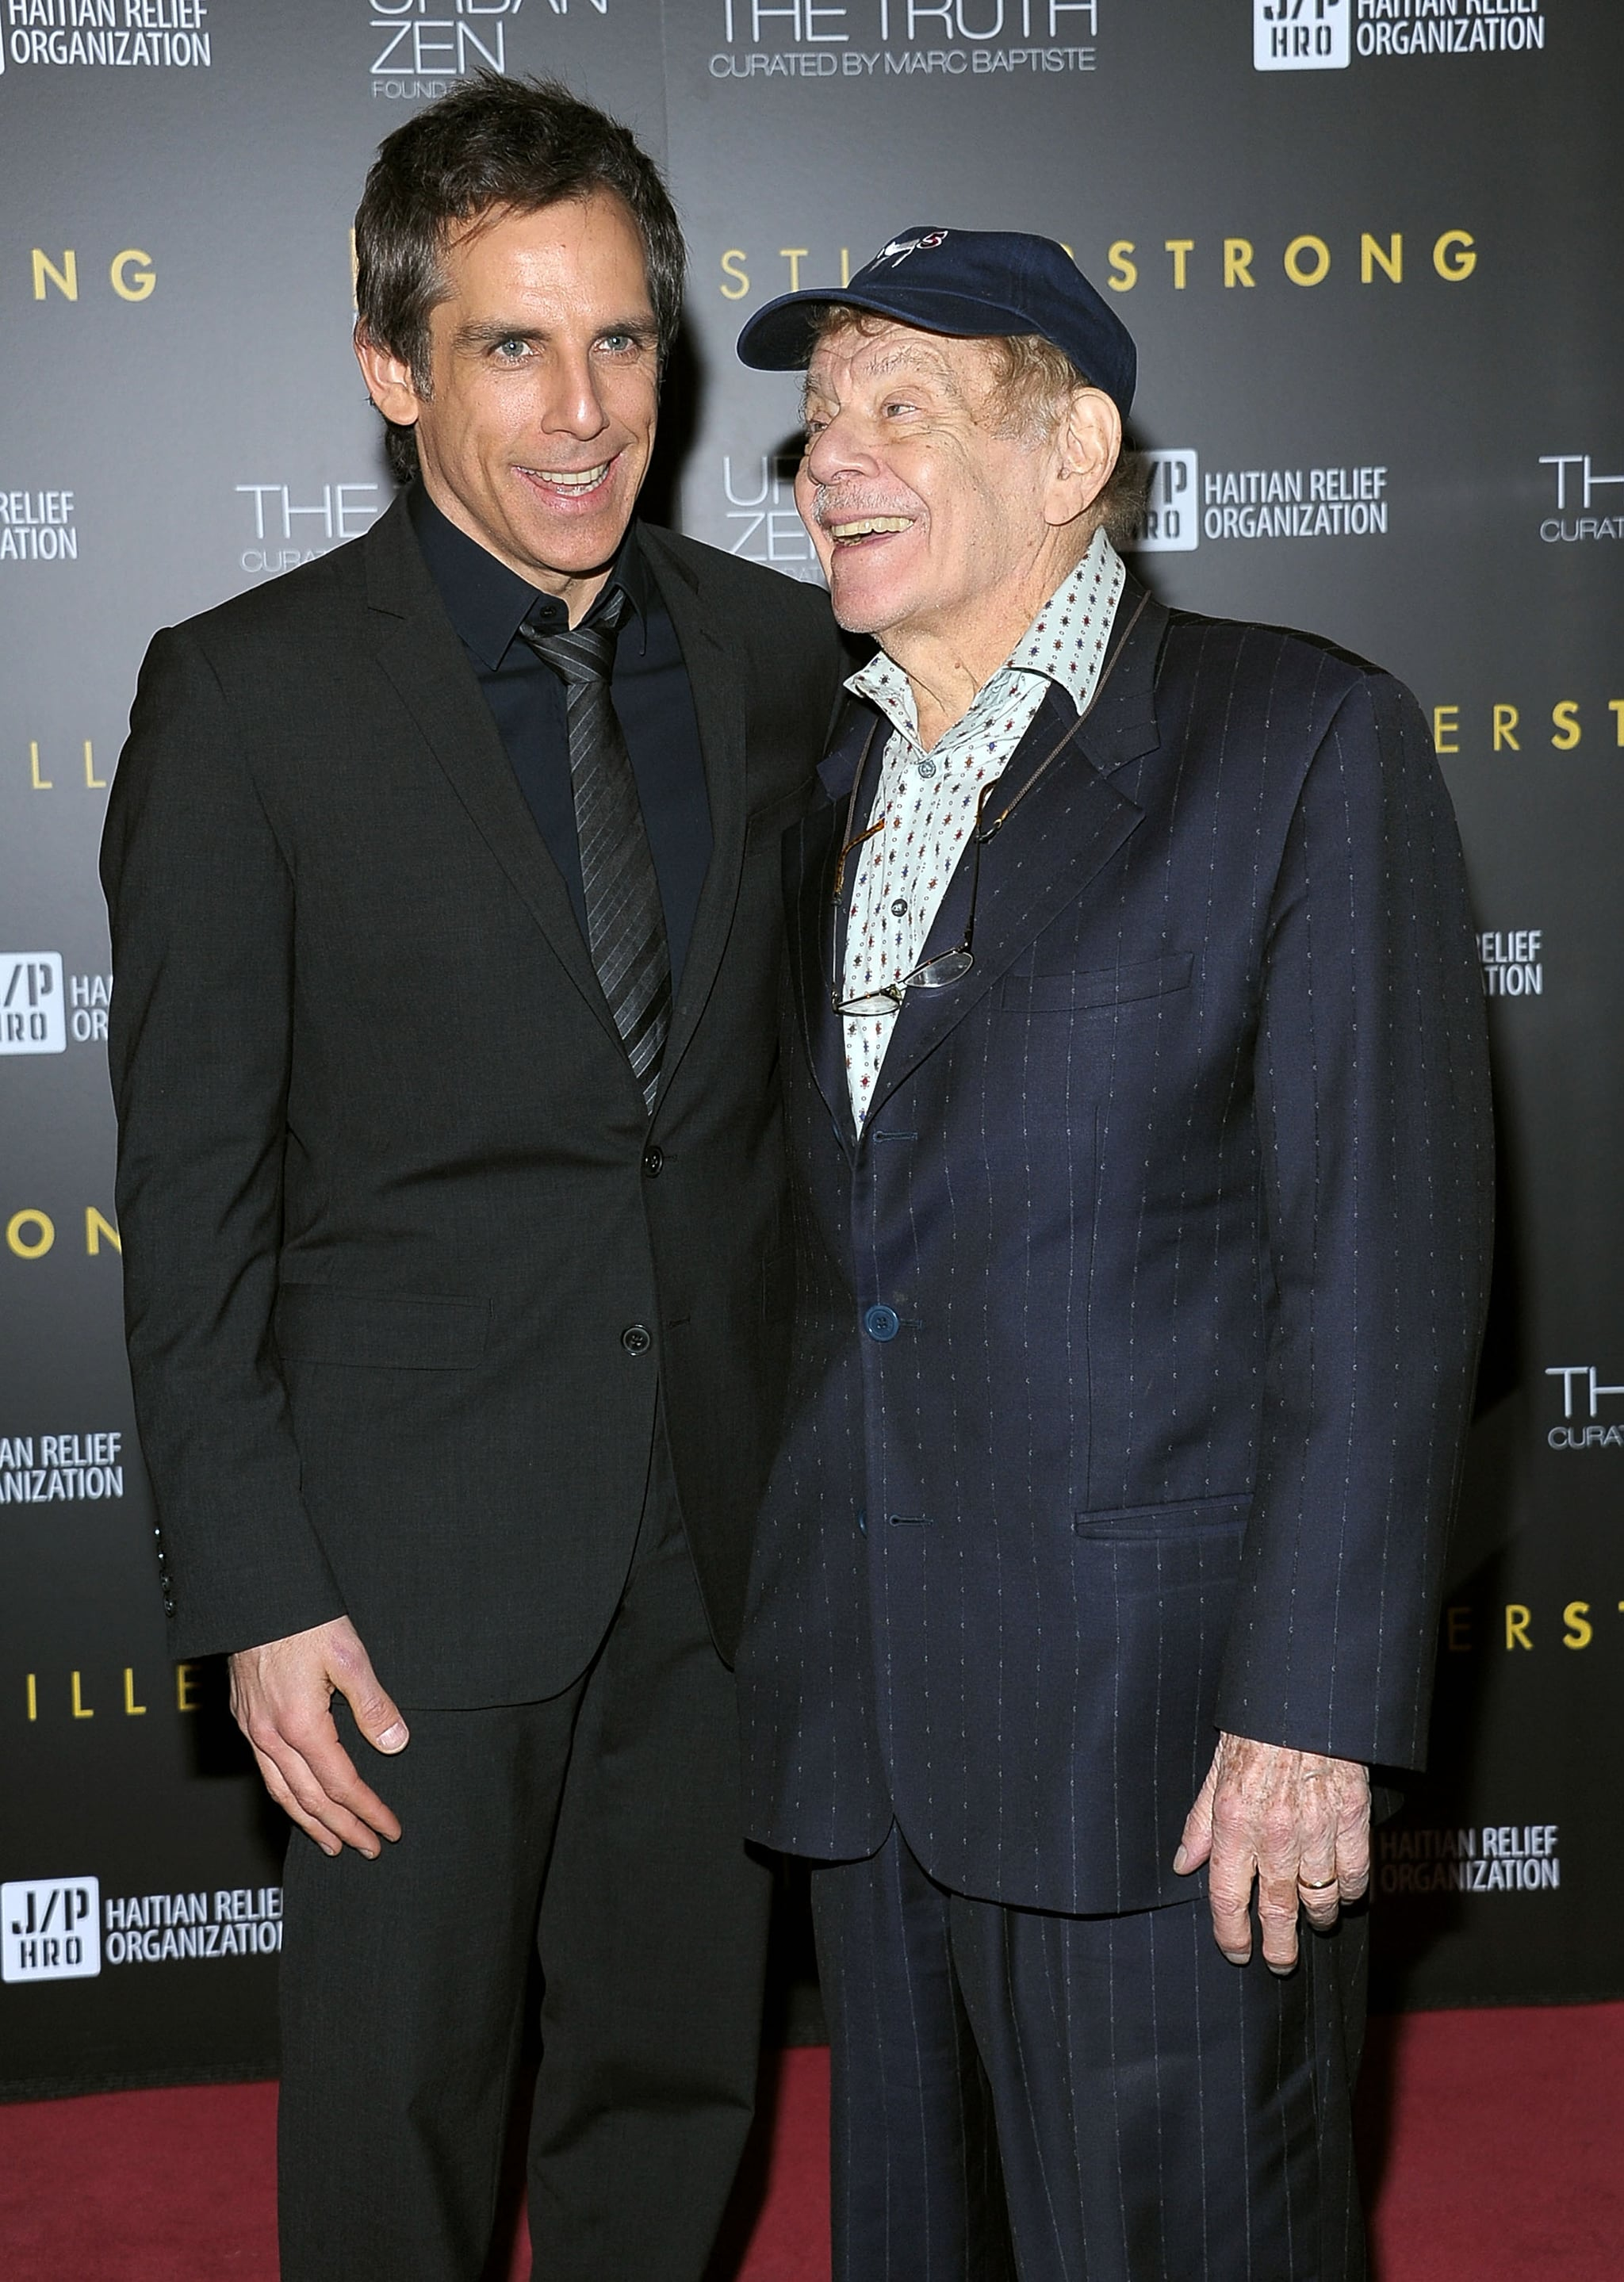 NEW YORK, NY - FEBRUARY 11: Ben Stiller and Jerry Stiller arrive at the HELP HAITI benefiting The Ben Stiller Foundation and The J/P Haitian Relief Organization at the Urban Zen Center At Stephan Weiss Studio on February 11, 2011 in New York City.  (Photo by Michael Loccisano/Getty Images)